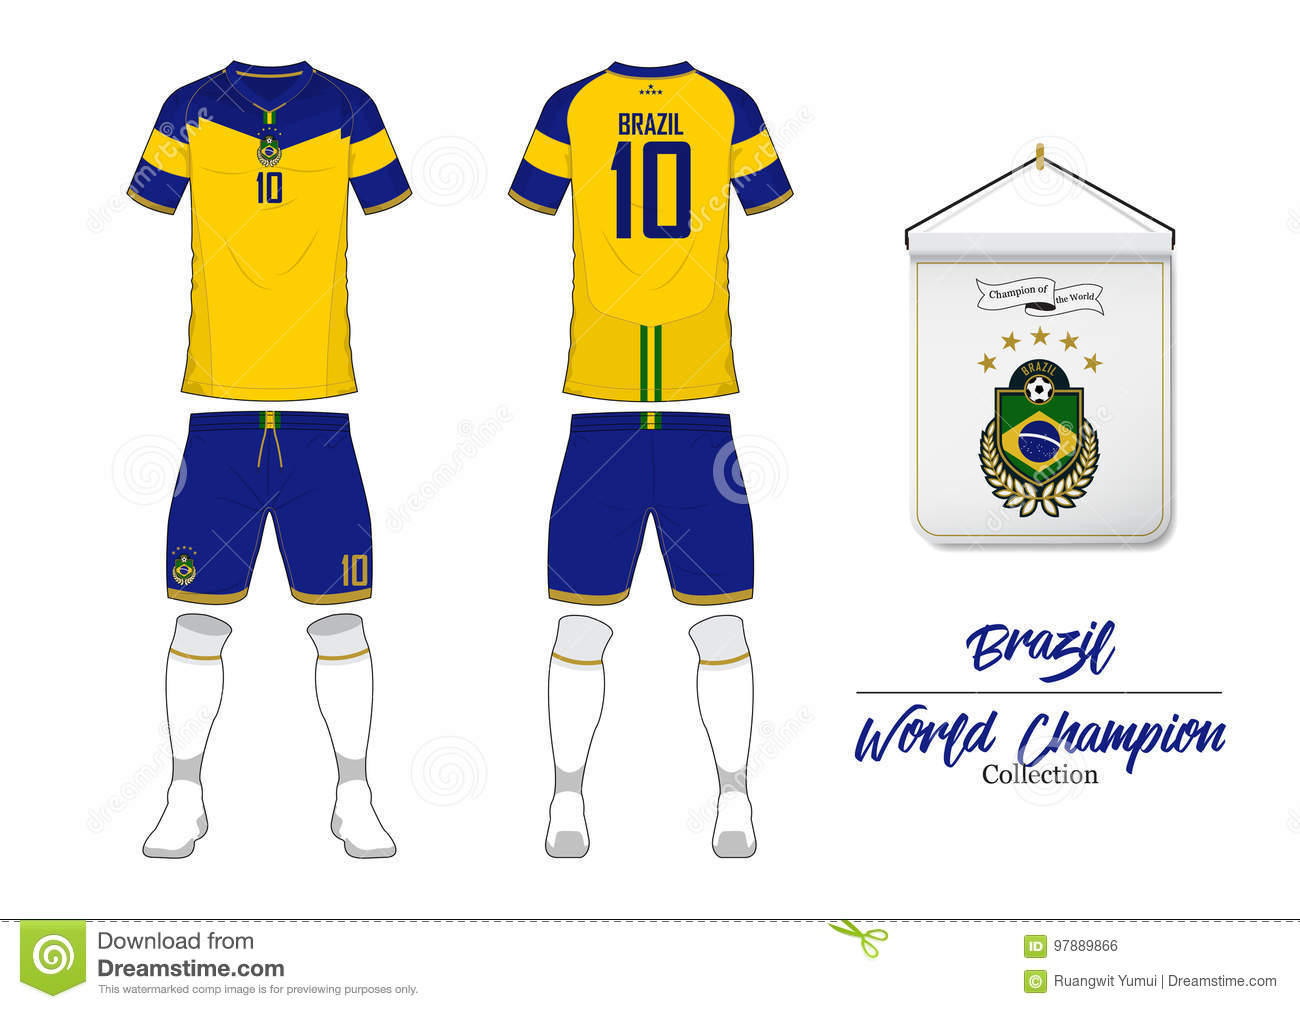 5b4d908e9 Soccer jersey or football kit. Brazil football national team. Football logo  with house flag. Front and rear view soccer uniform.